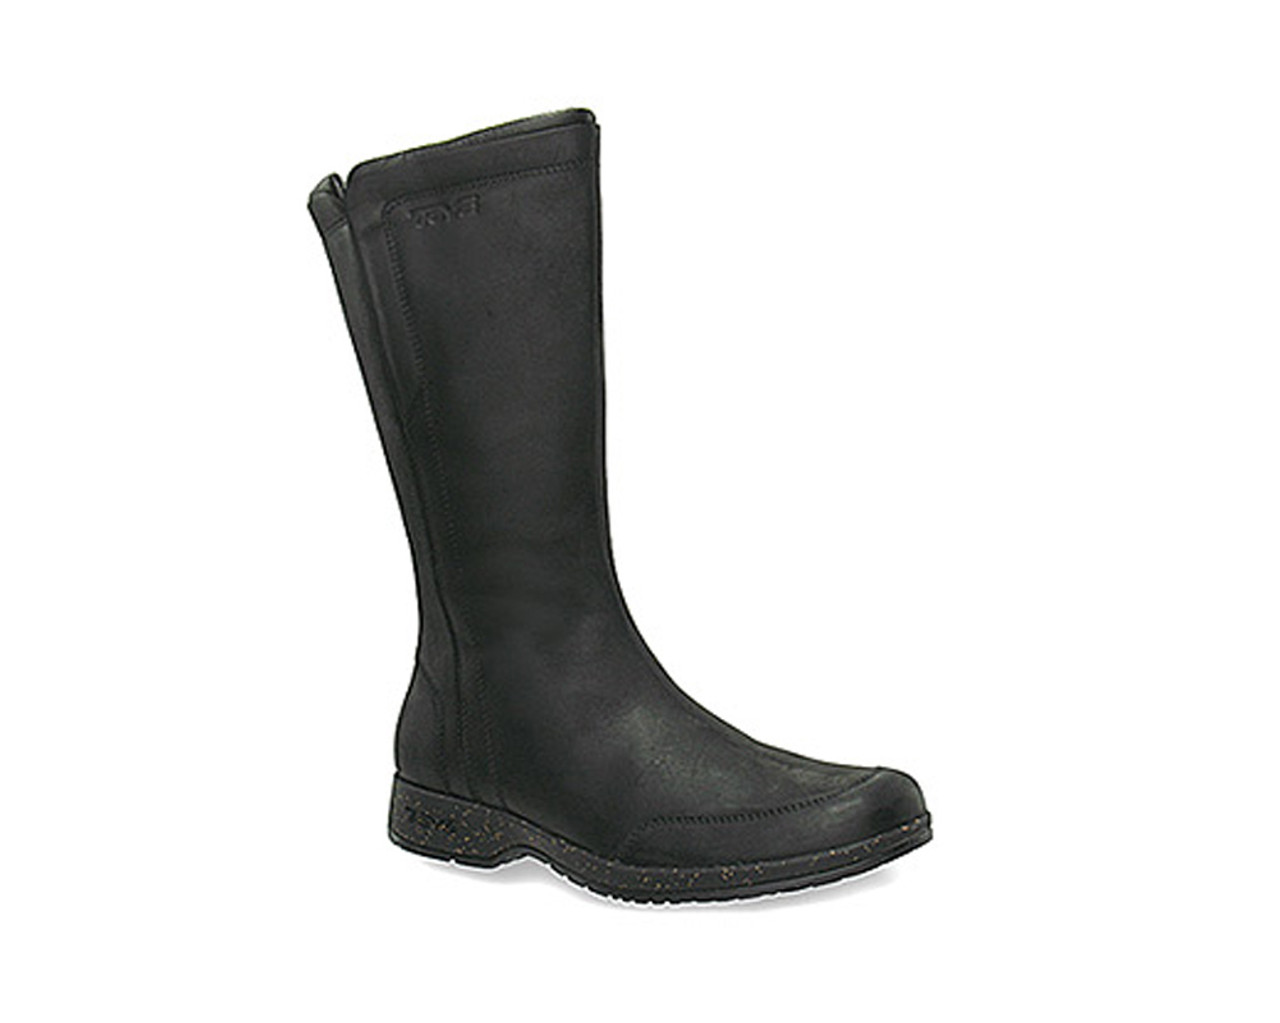 f03d27728660 Teva Women s Capistrano Boot Black - Shop now   Shoolu.com